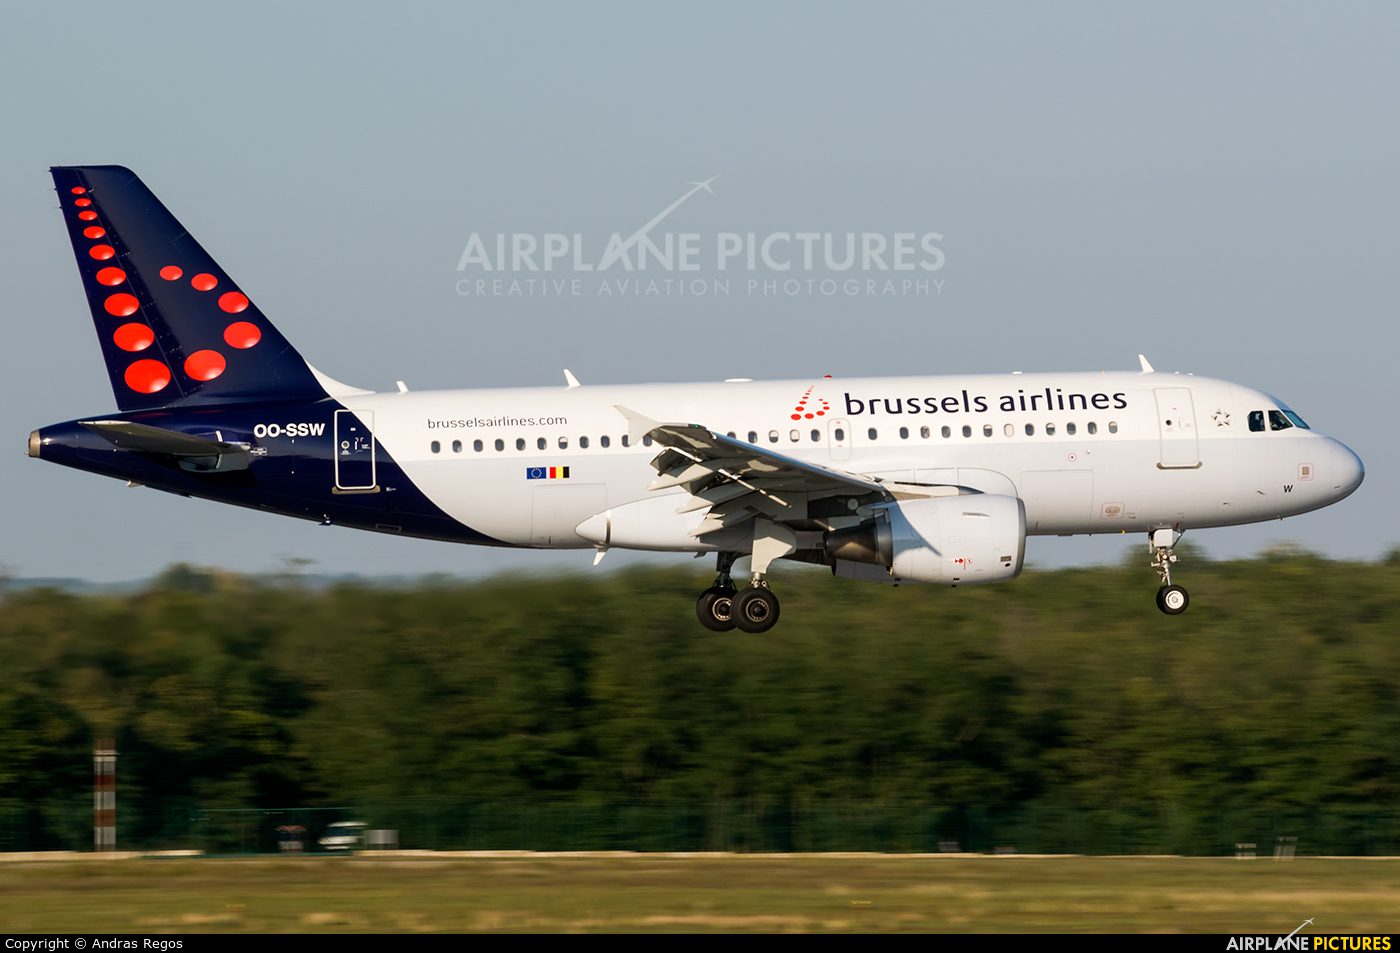 Brussels Airlines OO-SSW aircraft at Budapest Ferenc Liszt International Airport